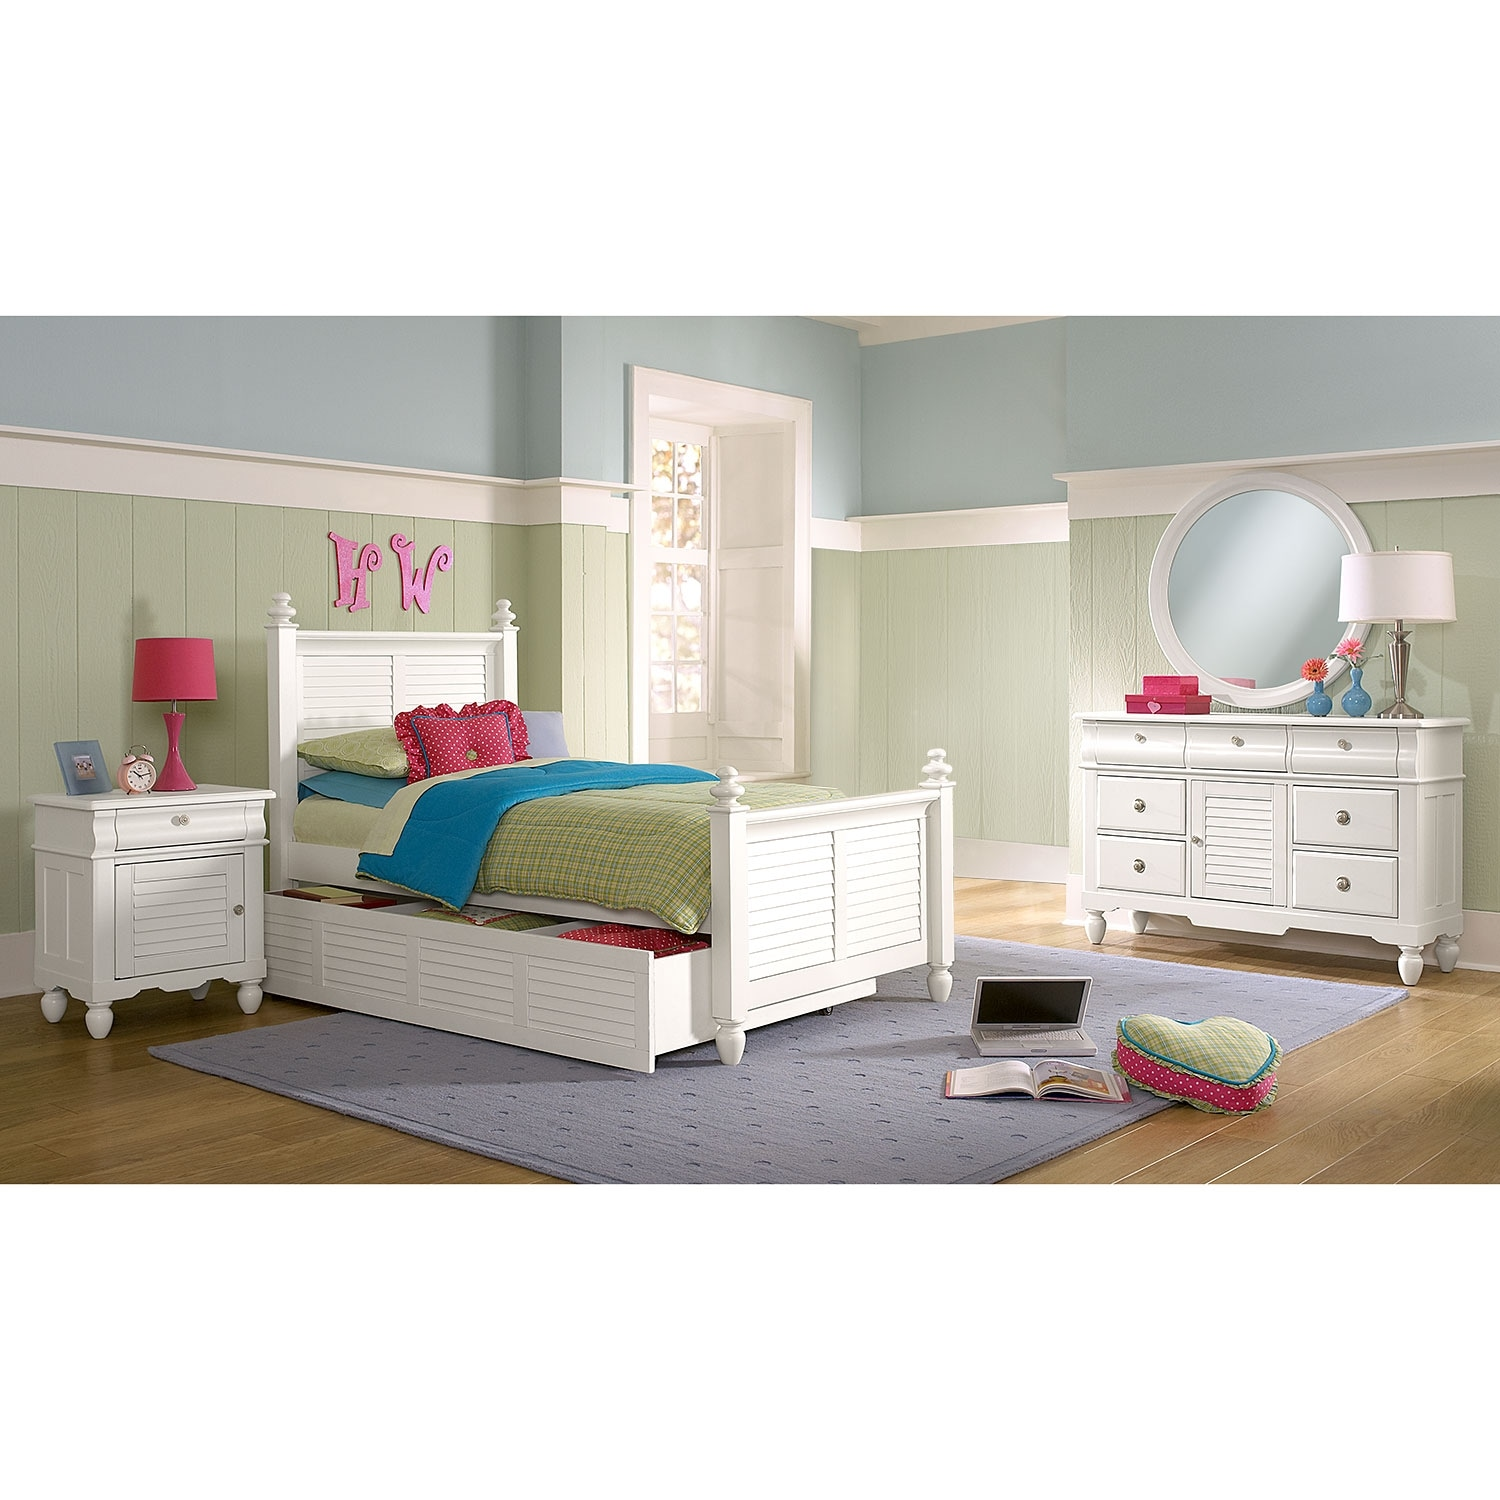 Bedroom furniture gumtree ni myminimalist second hand bedroom furniture  belfast modroxcom ketotrimfo ImagesSecond Hand Bedroom Furniture Belfast Images   Home Ideas For your  . Second Hand Bedroom Furniture Belfast. Home Design Ideas